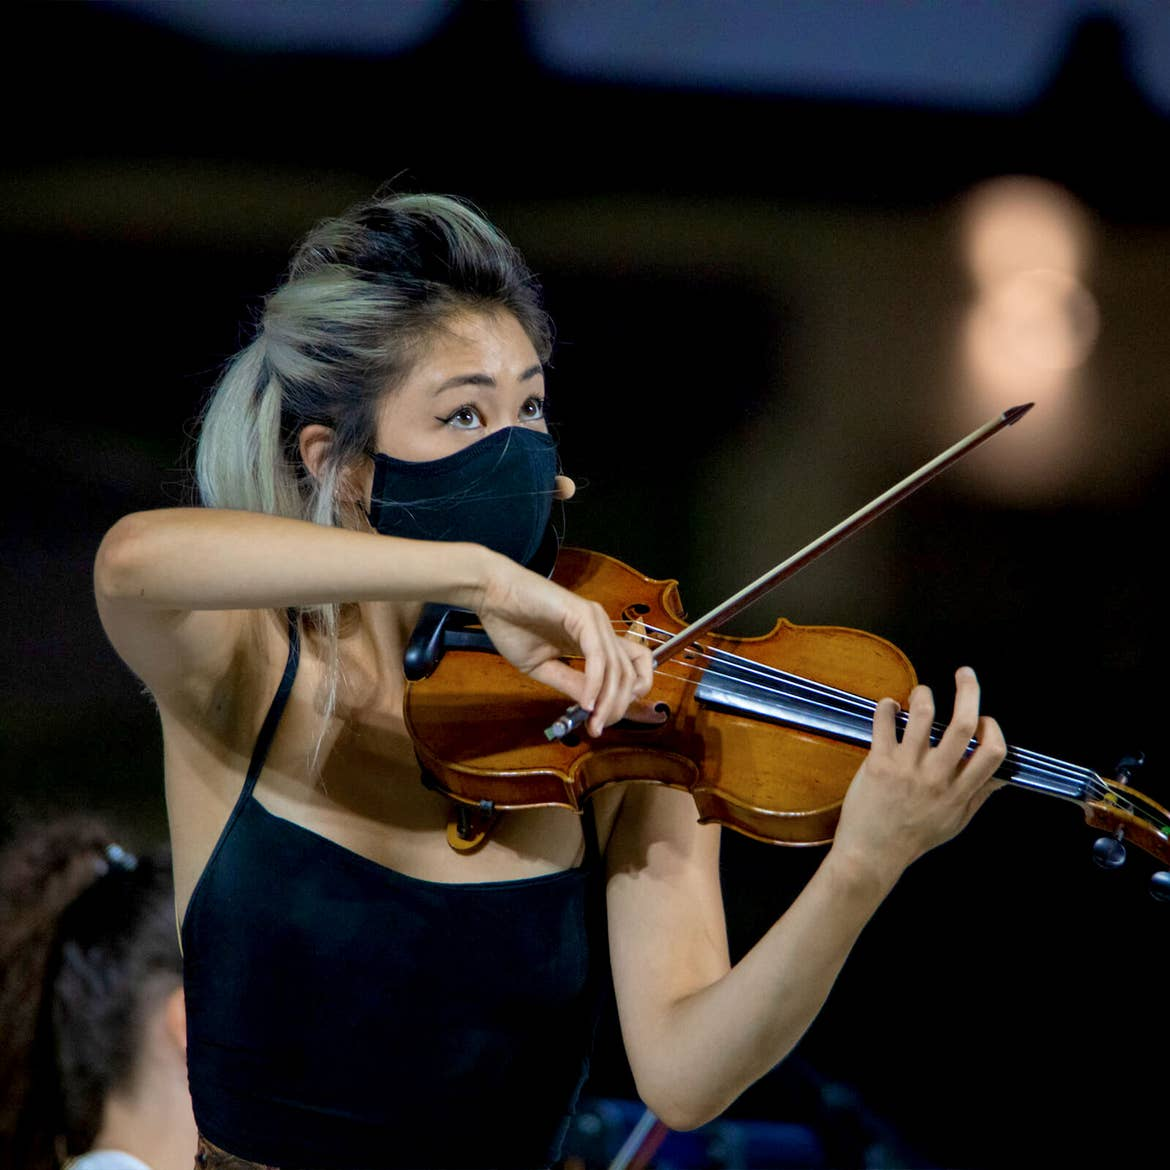 A violinist wears a black face mask while performing at Orlando Philharmonic at Exploria Stadium.